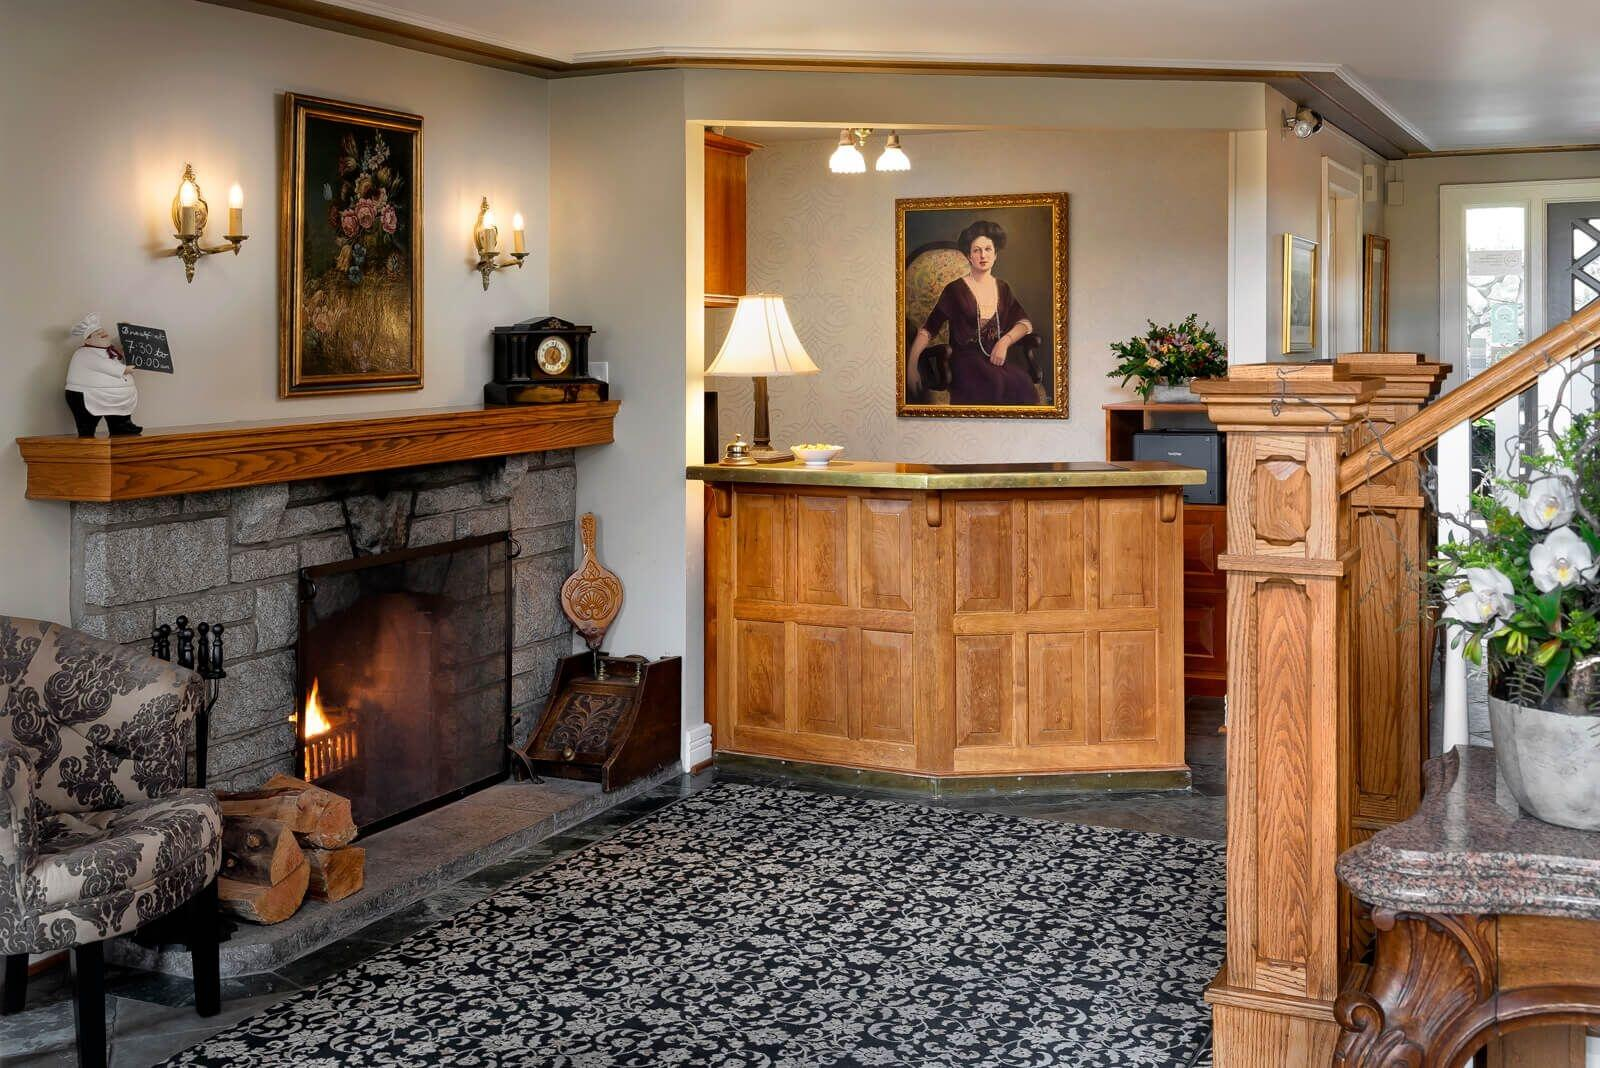 Lobby with fire place and check in desk